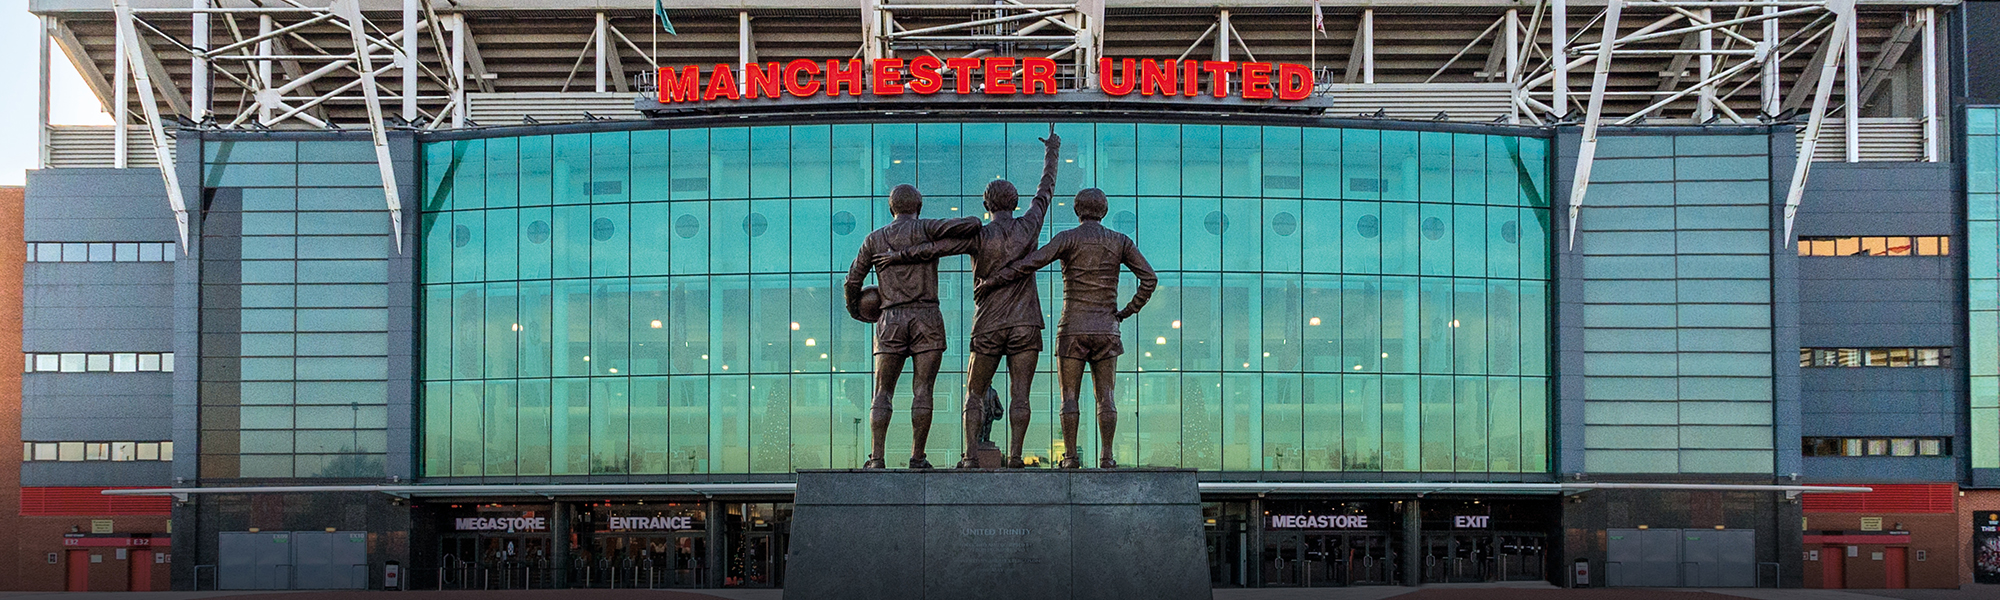 INTERESTED IN HOLDING YOUR EVENT AT OLD TRAFFORD?<P>PLEASE COMPLETE THE FORM BELOW